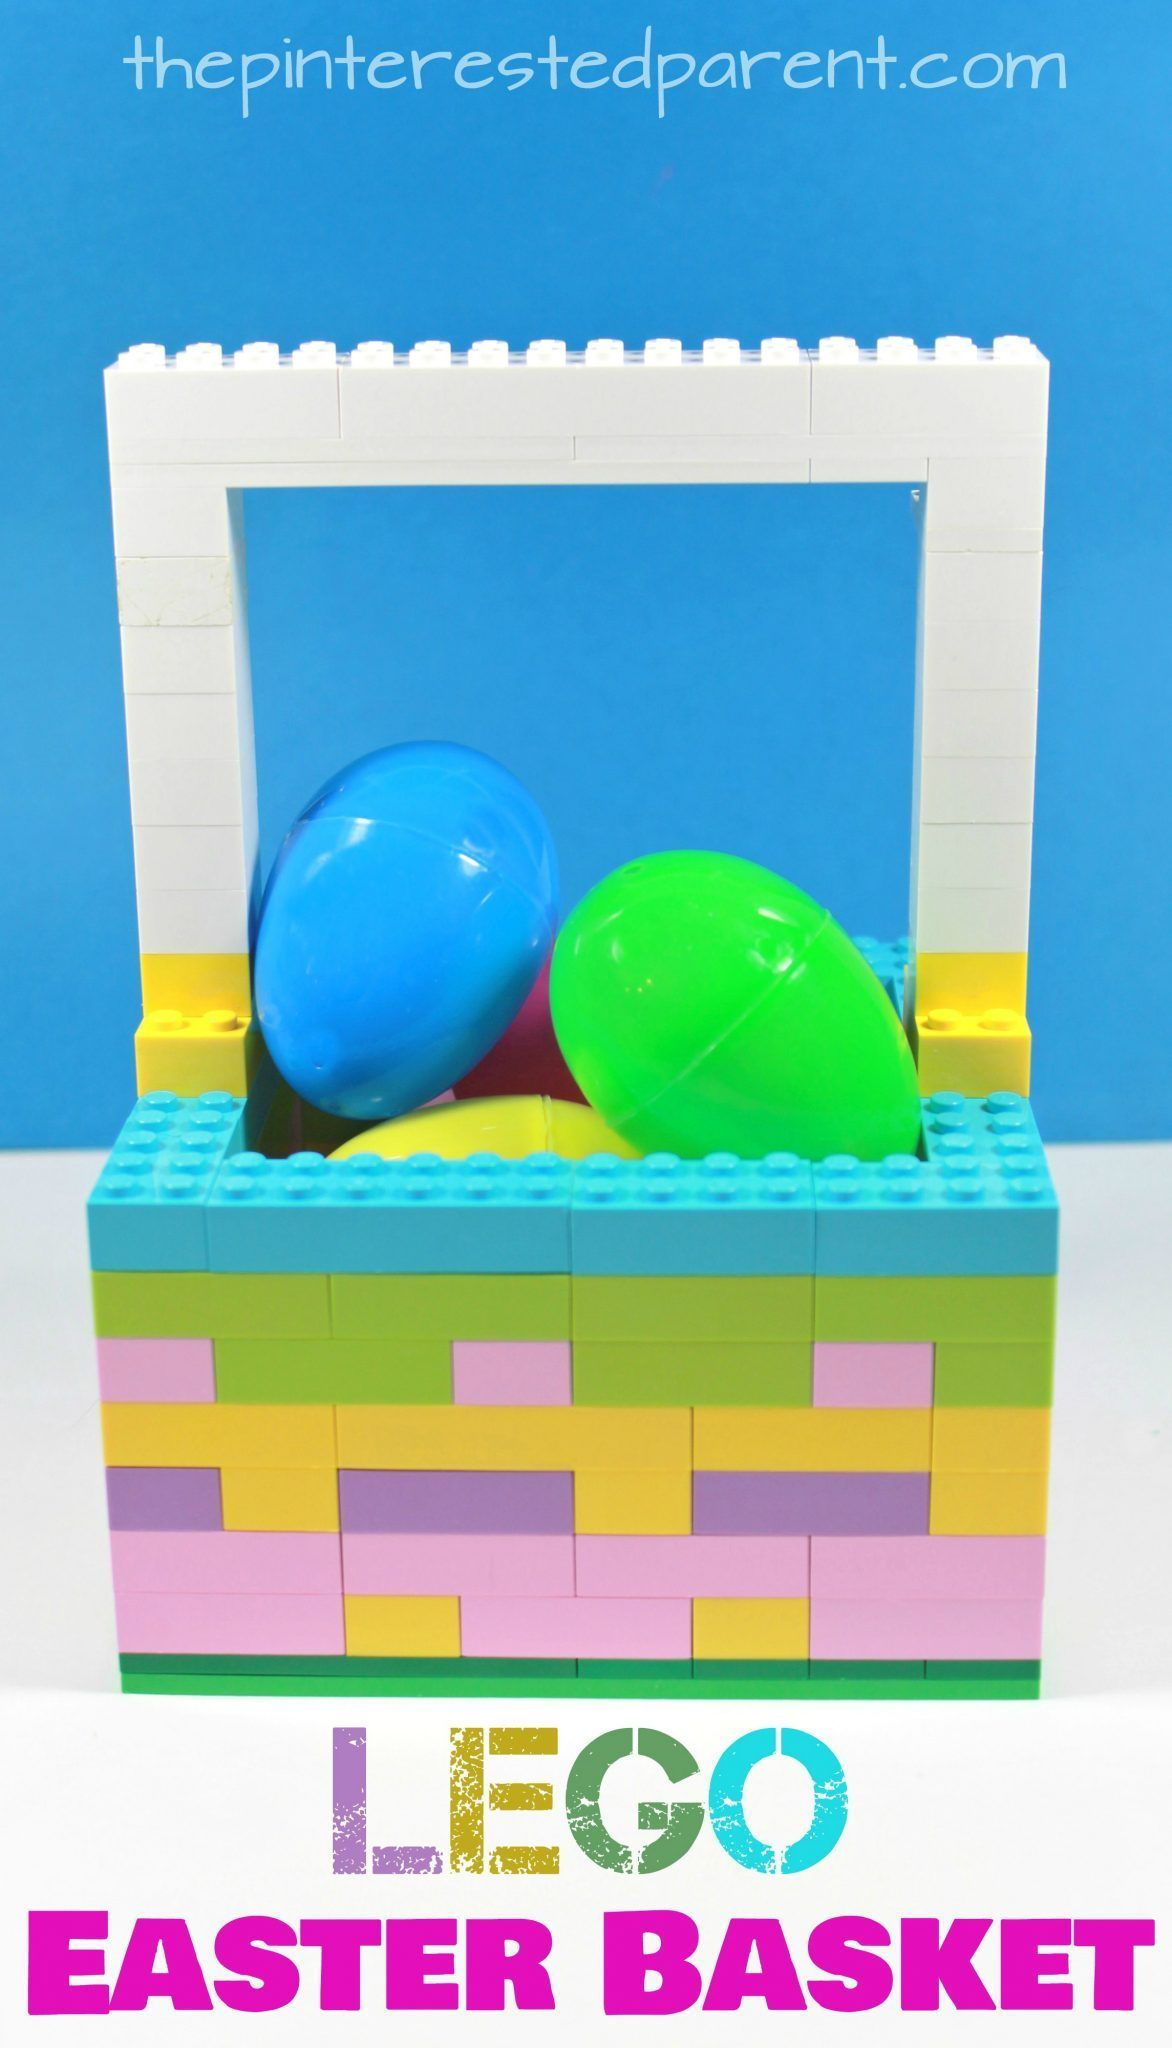 Lego easter basket a great gift idea or lego build for the kids lego easter basket a great gift idea or lego build for the kids kids negle Choice Image